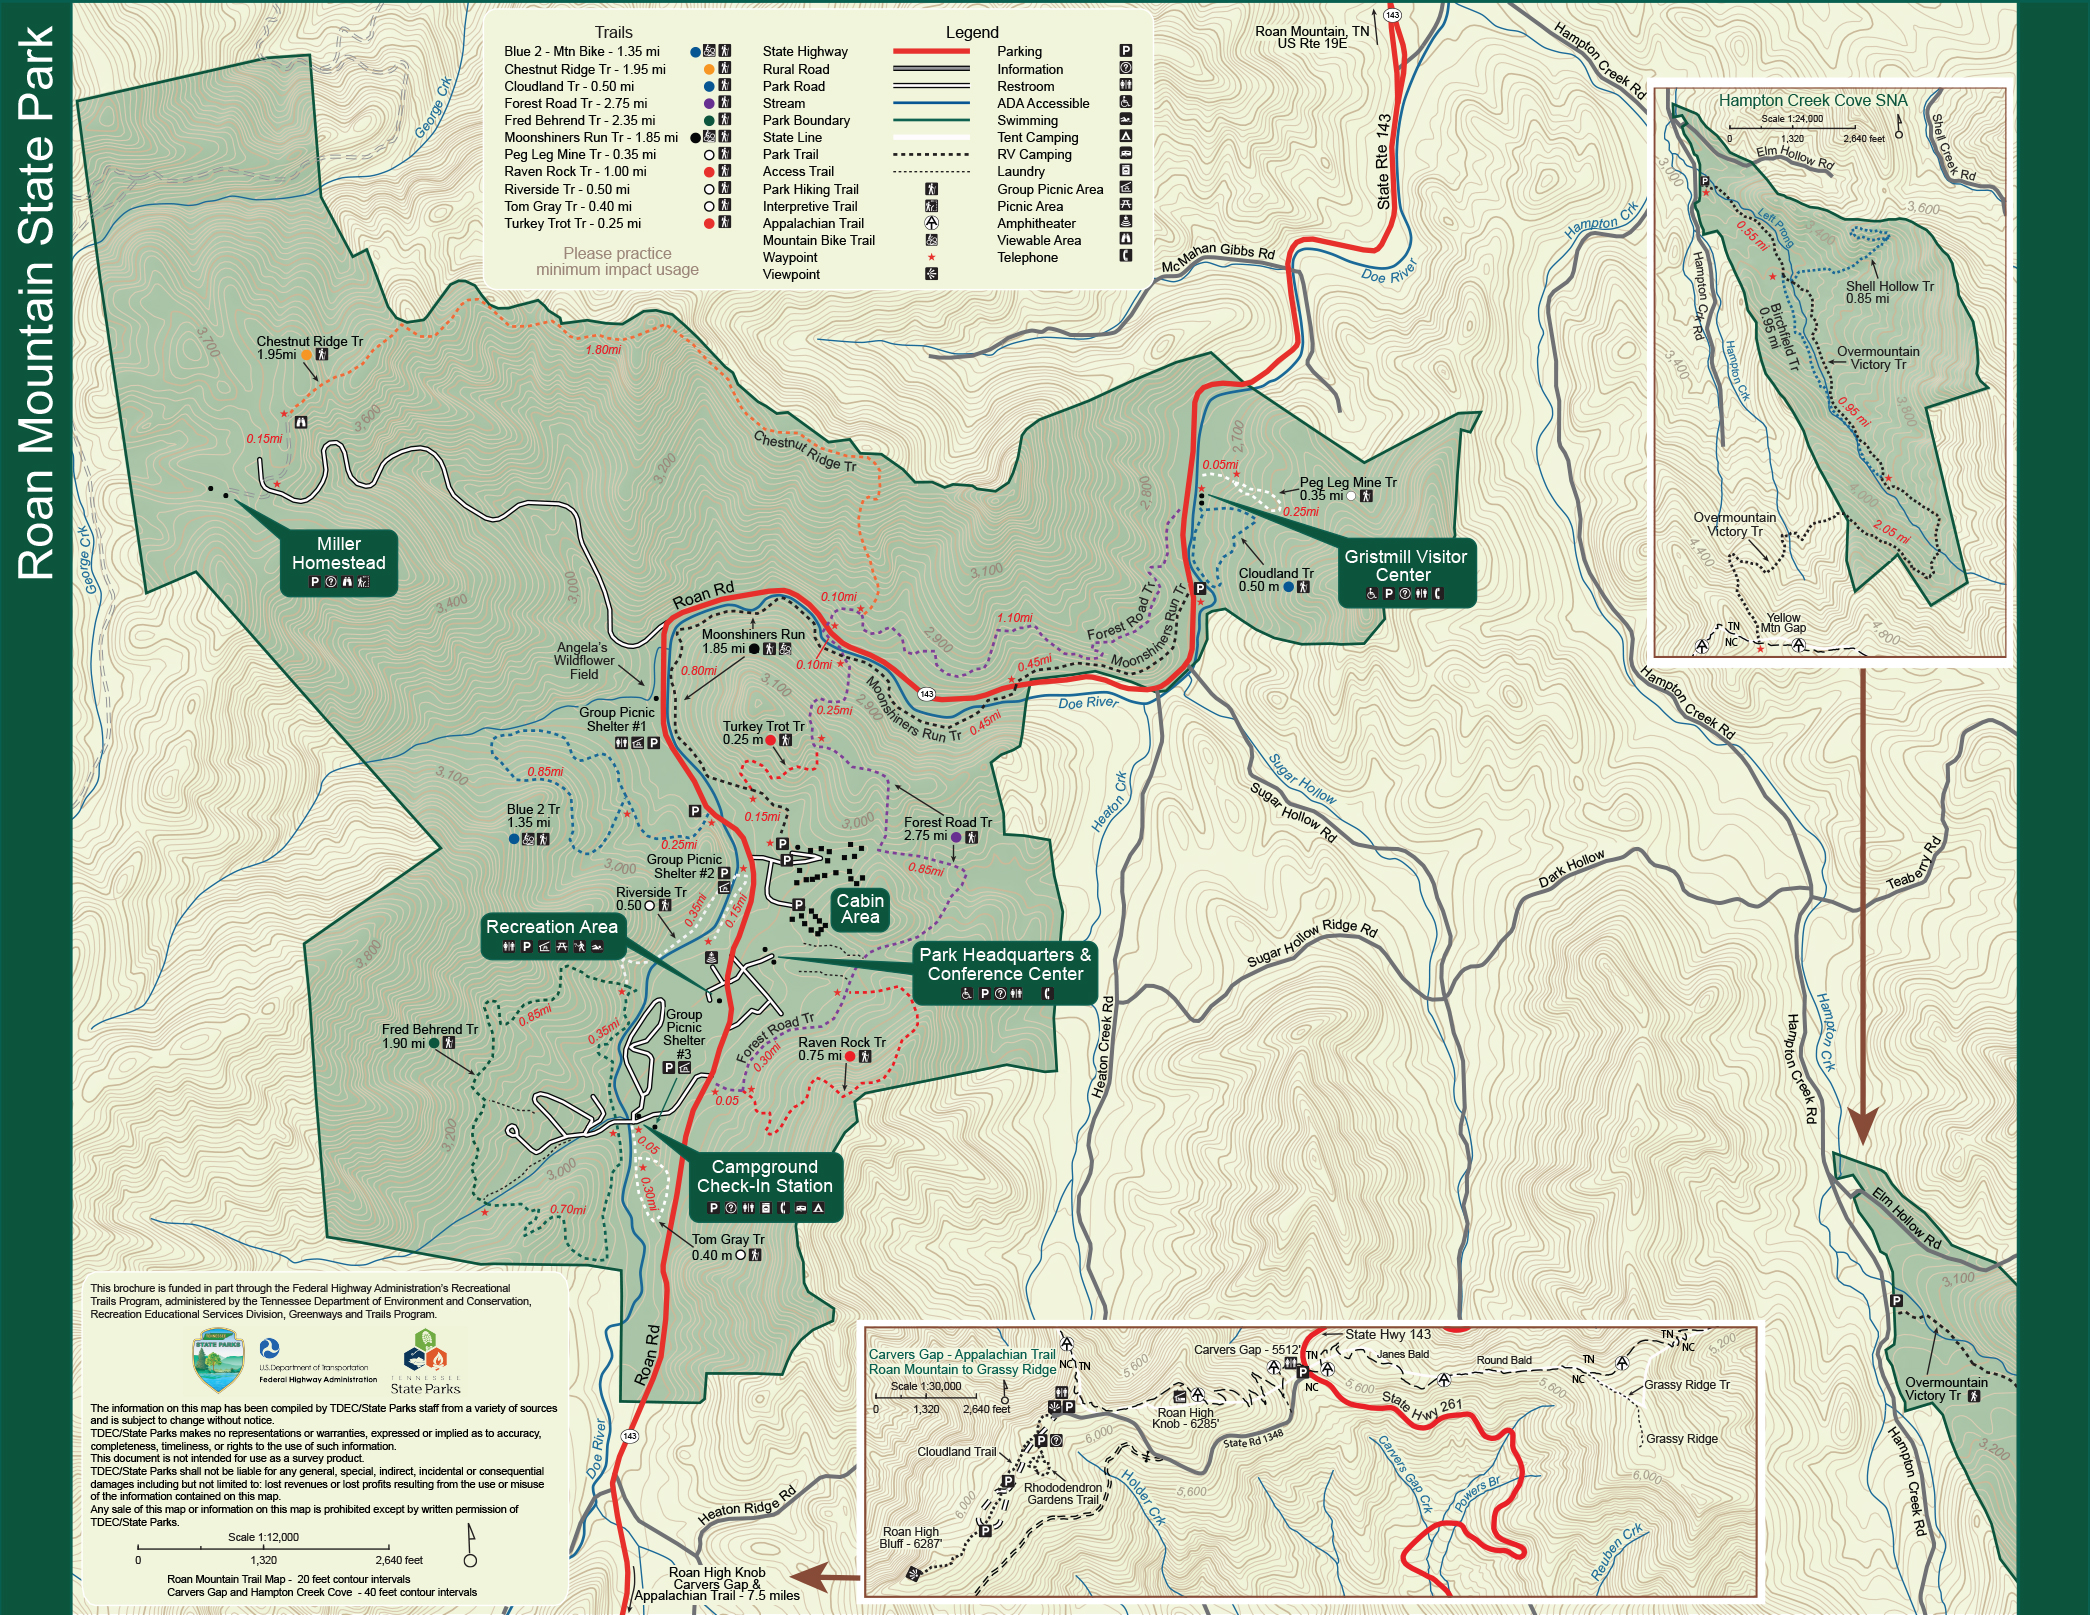 Roan Mountain State Park — Tennessee State Parks on gunpowder falls state park trail map, fairy stone state park trail map, high bridge trail state park trail map, tuckahoe state park trail map, cunningham falls state park trail map, gambrill state park trail map, leesylvania state park trail map, susquehanna state park trail map, grayson highlands state park trail map, occoneechee state park trail map, first landing state park trail map, hungry mother state park trail map, mason neck state park trail map, jones gap state park trail map, kiptopeke state park trail map, sky meadows state park trail map, caledon state park trail map, westmoreland state park trail map, patapsco valley state park trail map, cape henlopen state park trail map,